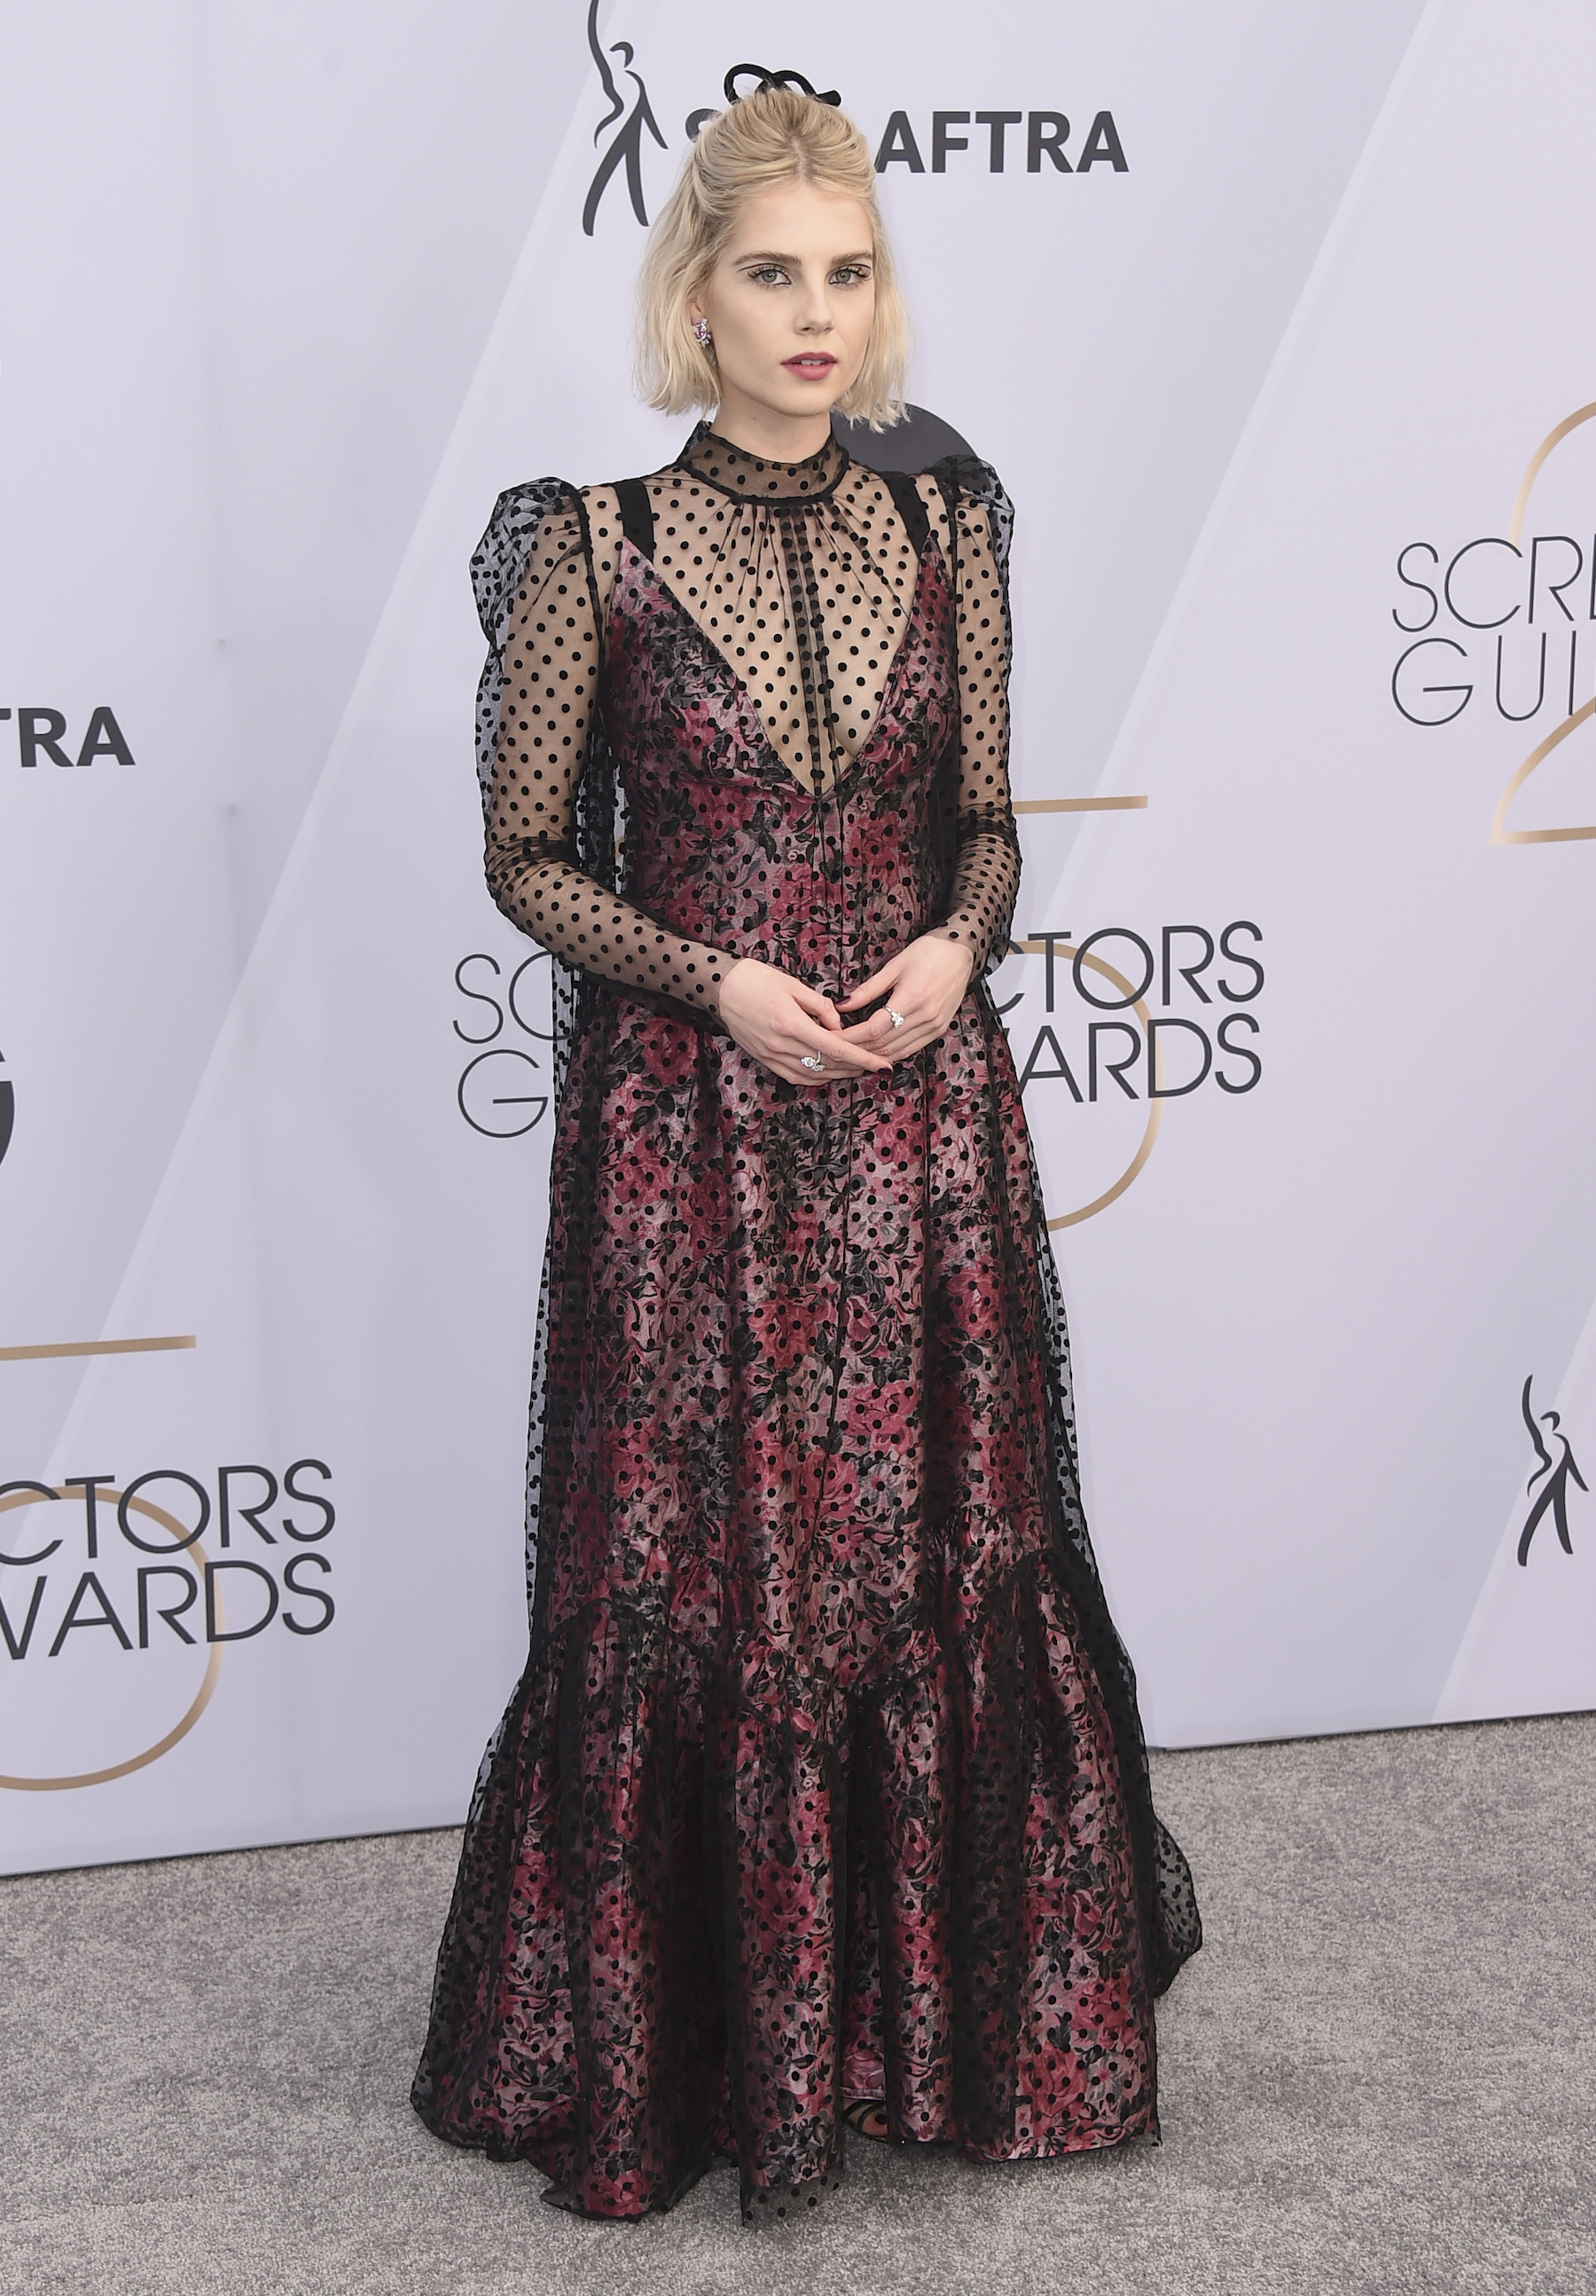 <div class='meta'><div class='origin-logo' data-origin='AP'></div><span class='caption-text' data-credit='Jordan Strauss/Invision/AP'>Lucy Boynton arrives at the 25th annual Screen Actors Guild Awards at the Shrine Auditorium & Expo Hall on Sunday, Jan. 27, 2019, in Los Angeles.</span></div>